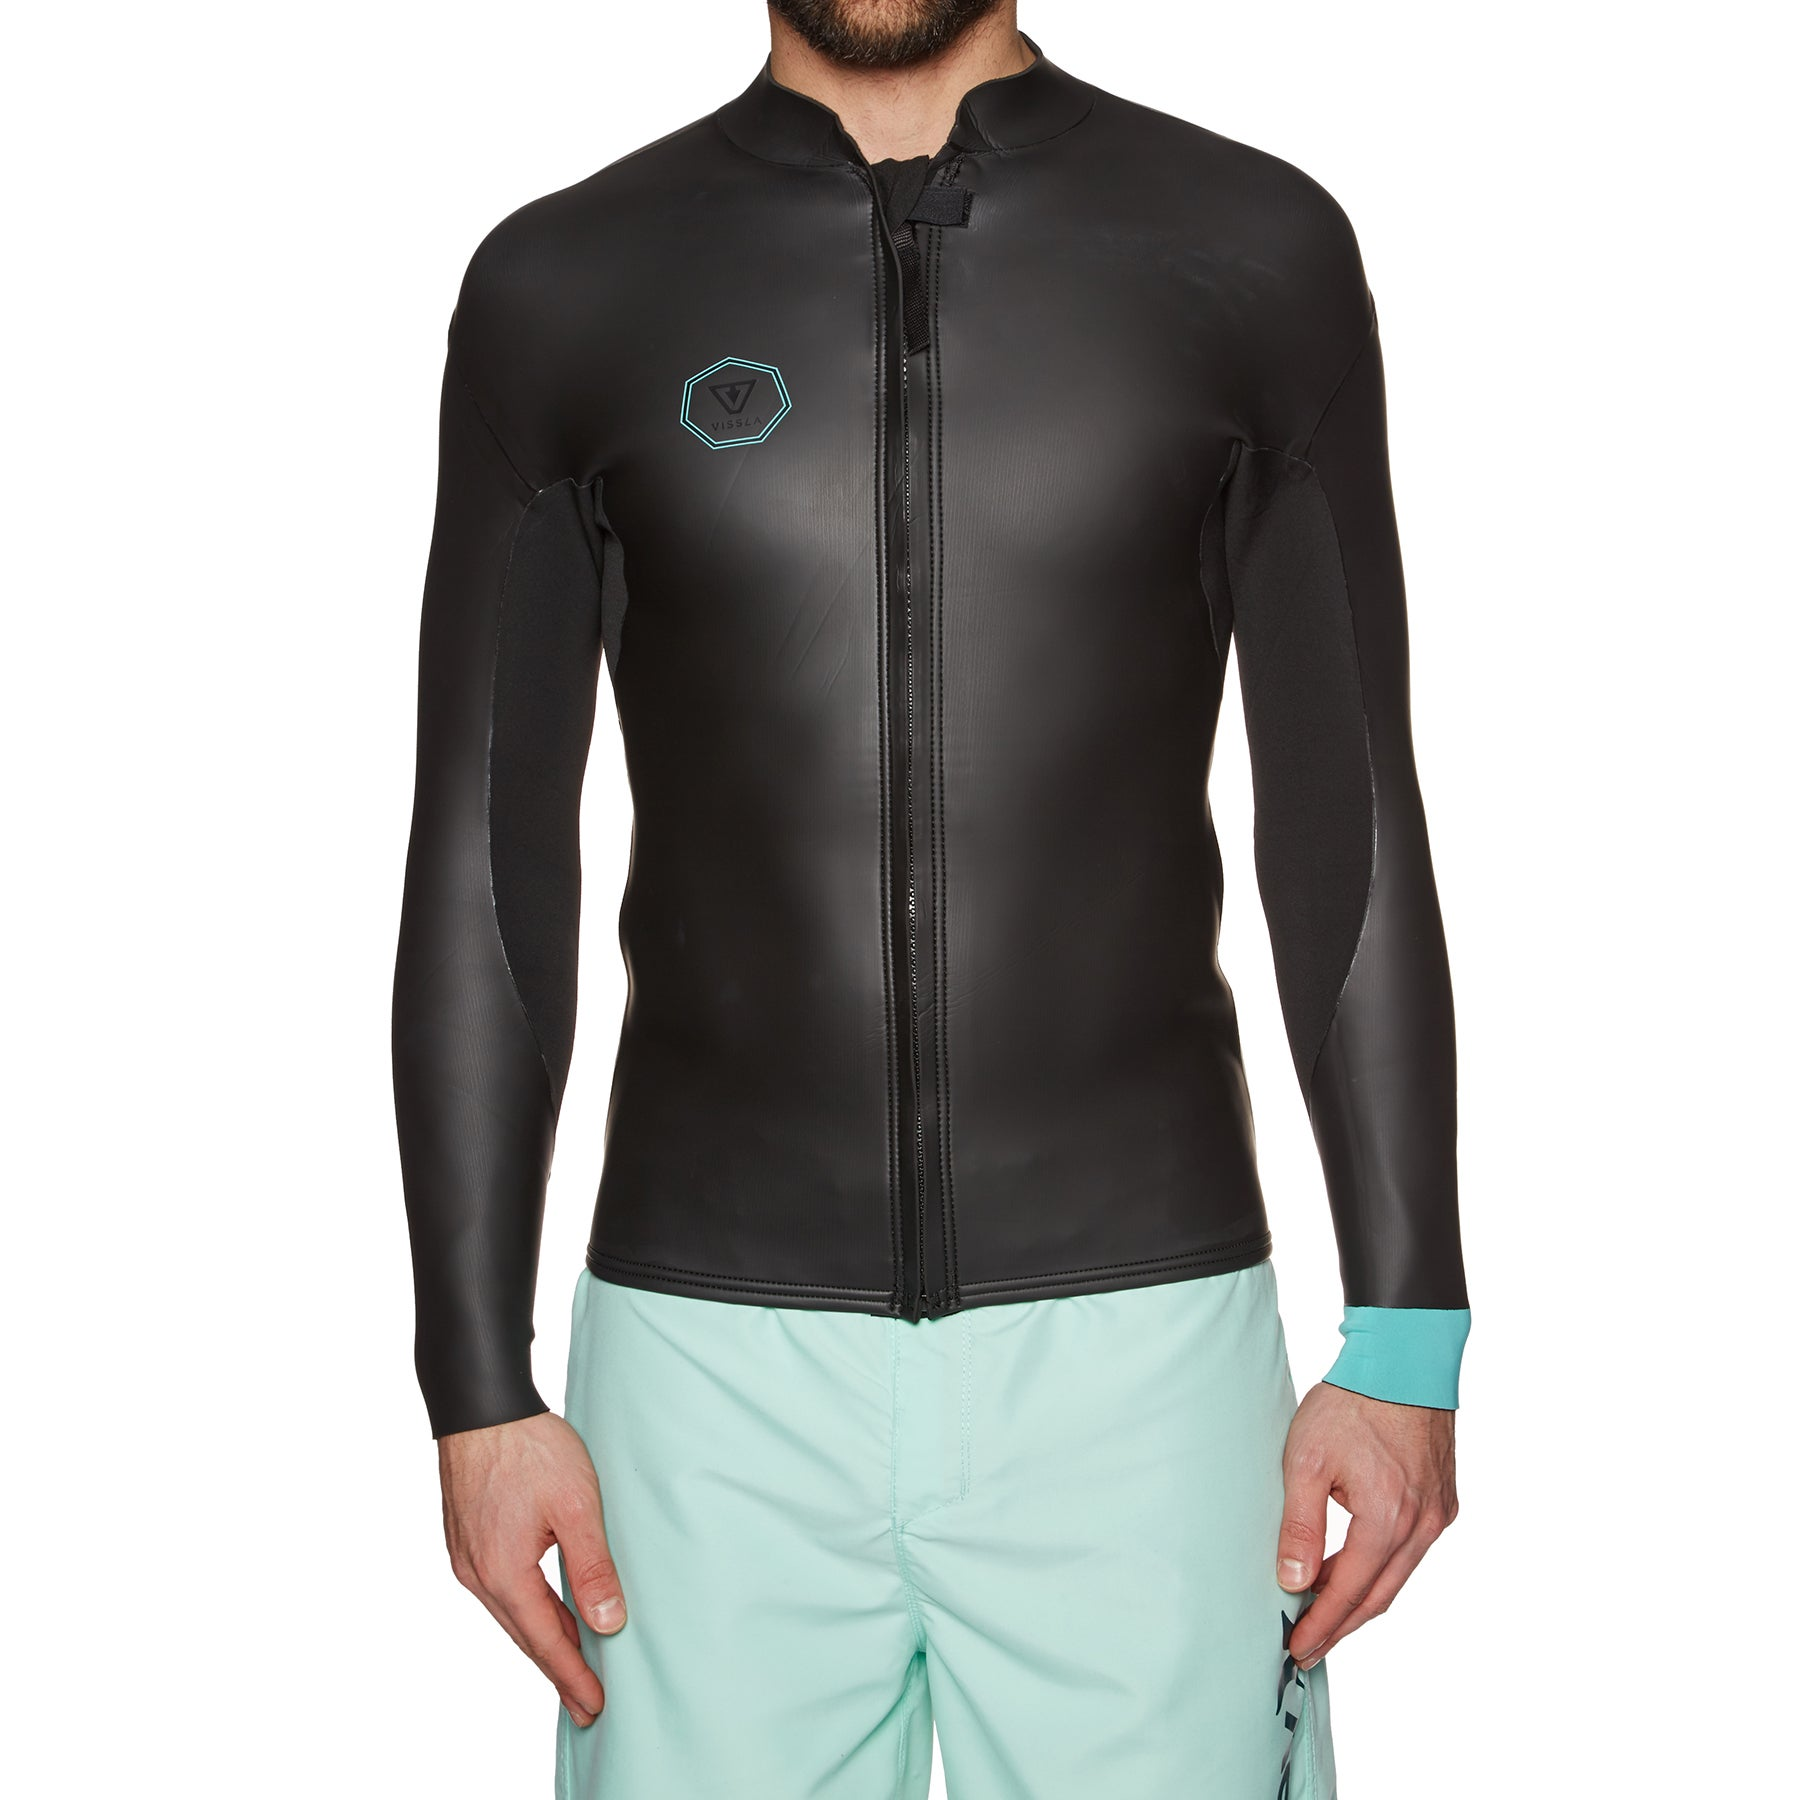 Vissla North Seas Smoothy 2mm 2019 Long Sleeve Front Zip Wetsuit Jacket - Black With Jade